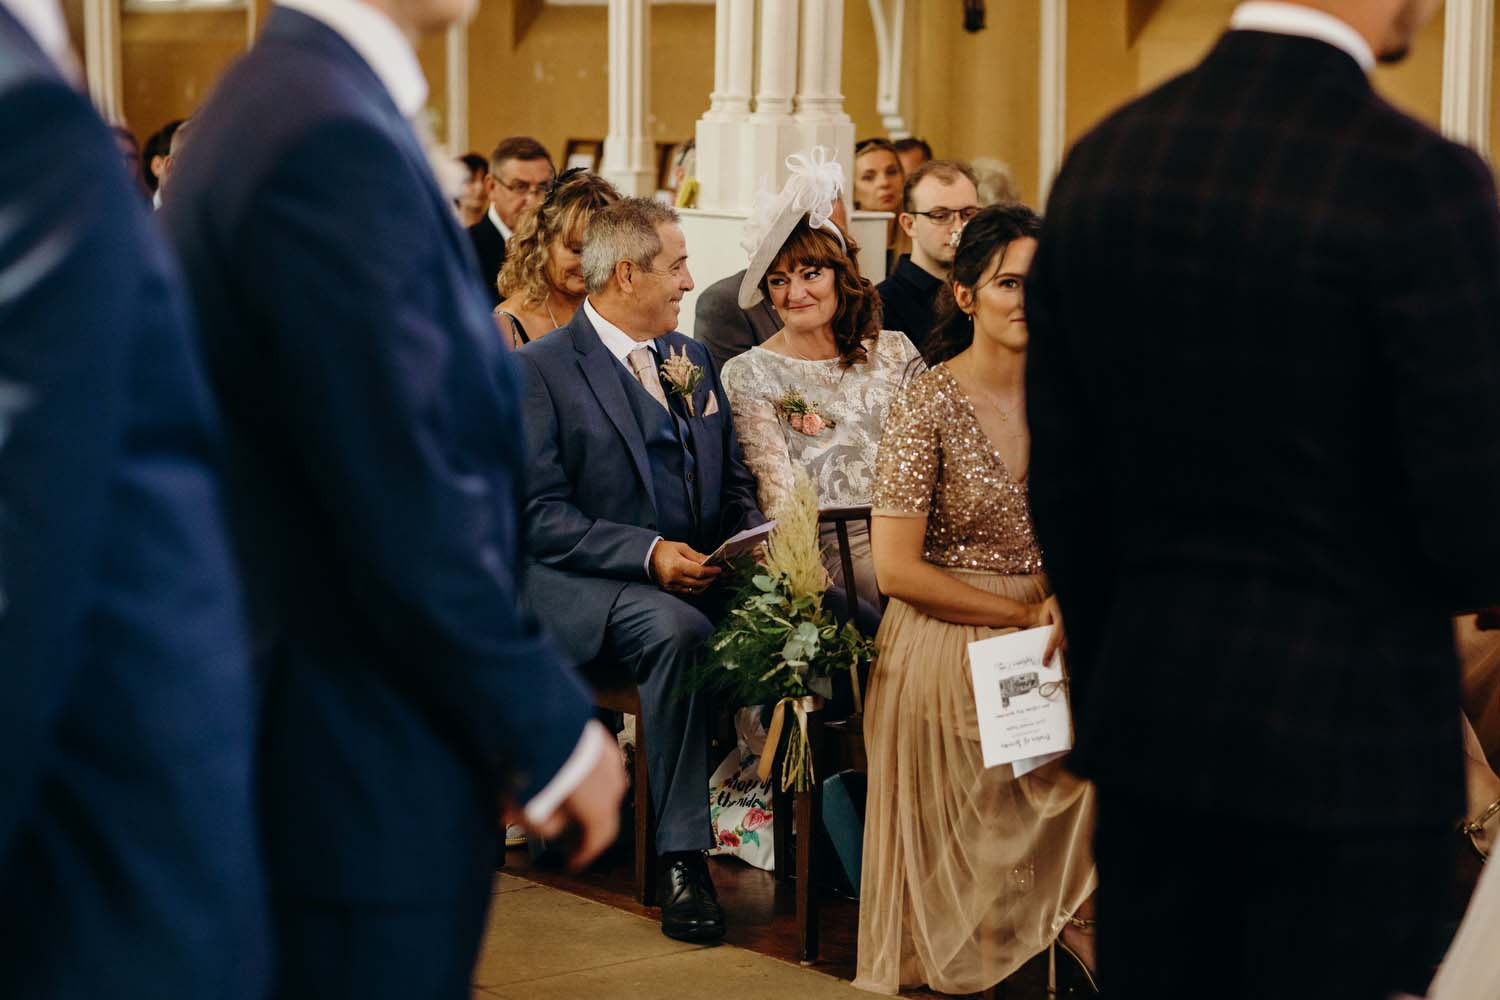 Parents of bride smile at each other